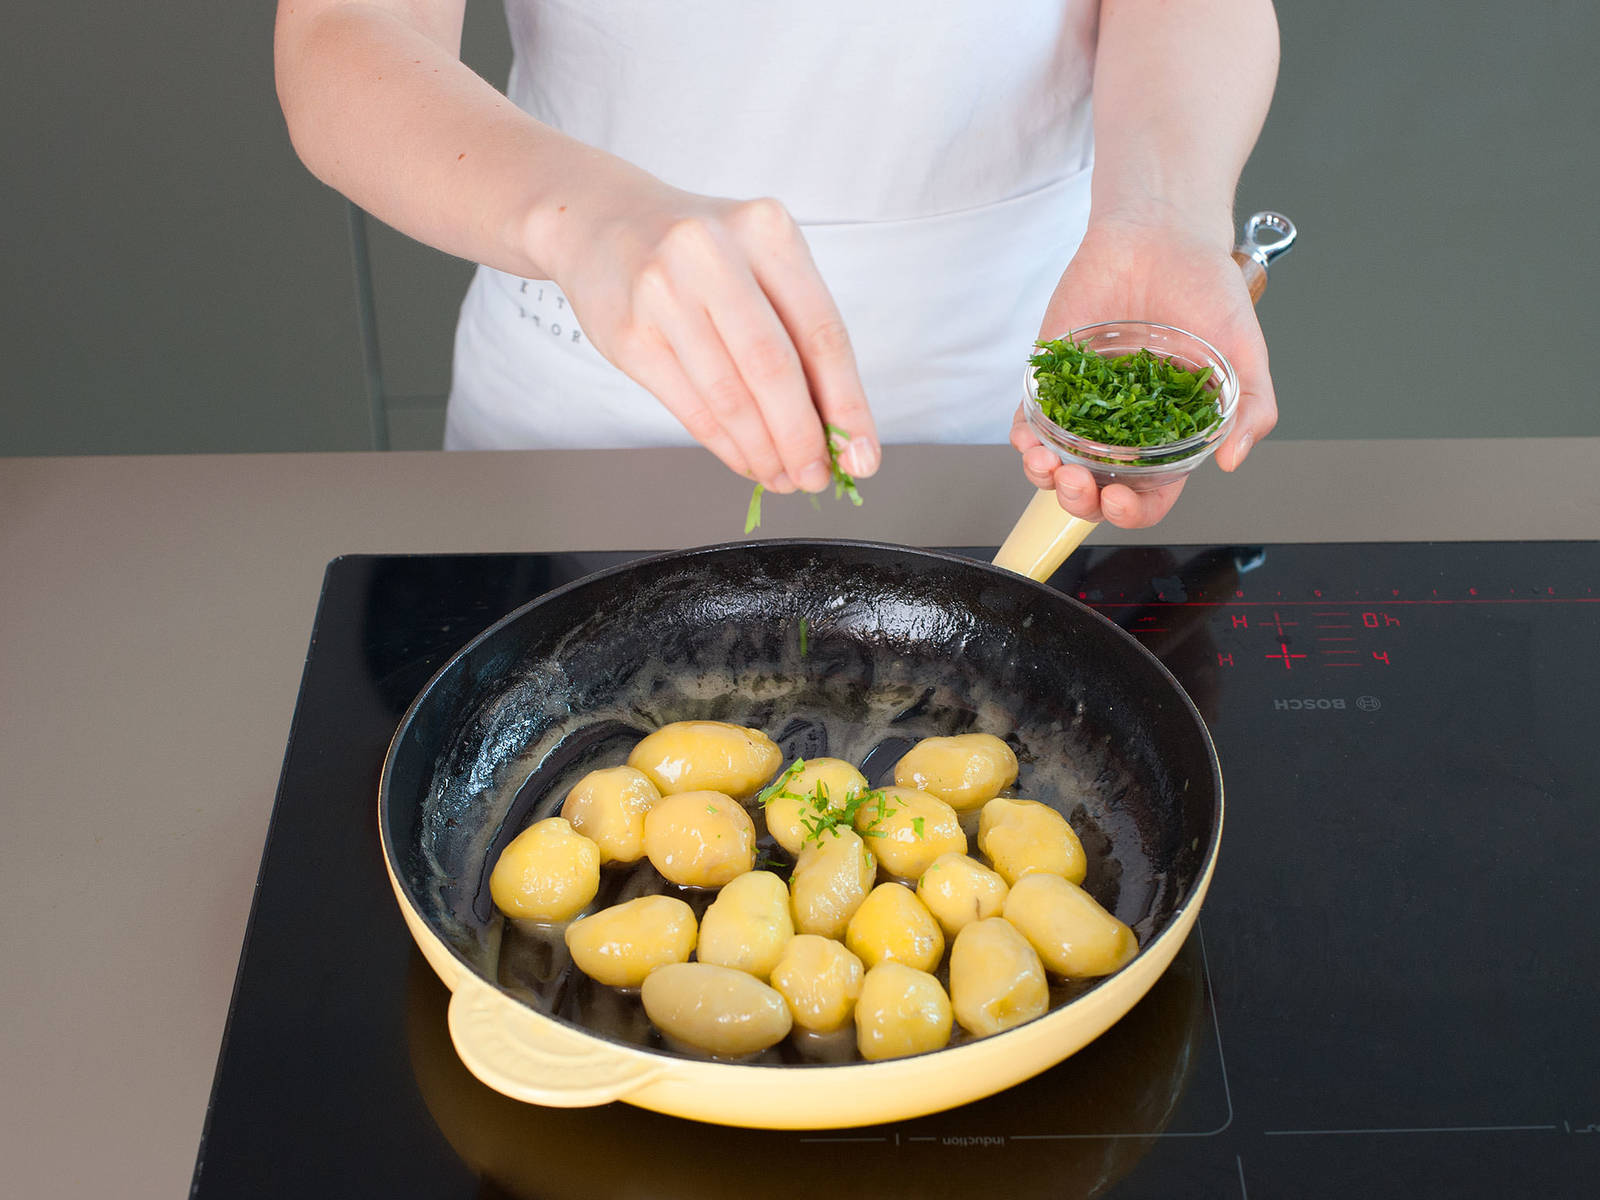 In a large saucepan, cook potatoes in salted water over medium heat for approx. 10 - 15 min. Drain and peel potatoes, then return to pan and sauté in half of butter and some of veal stock for approx. 3 - 5 min. Remove from heat, cover, and set aside. Add freshly chopped parsley right before serving.